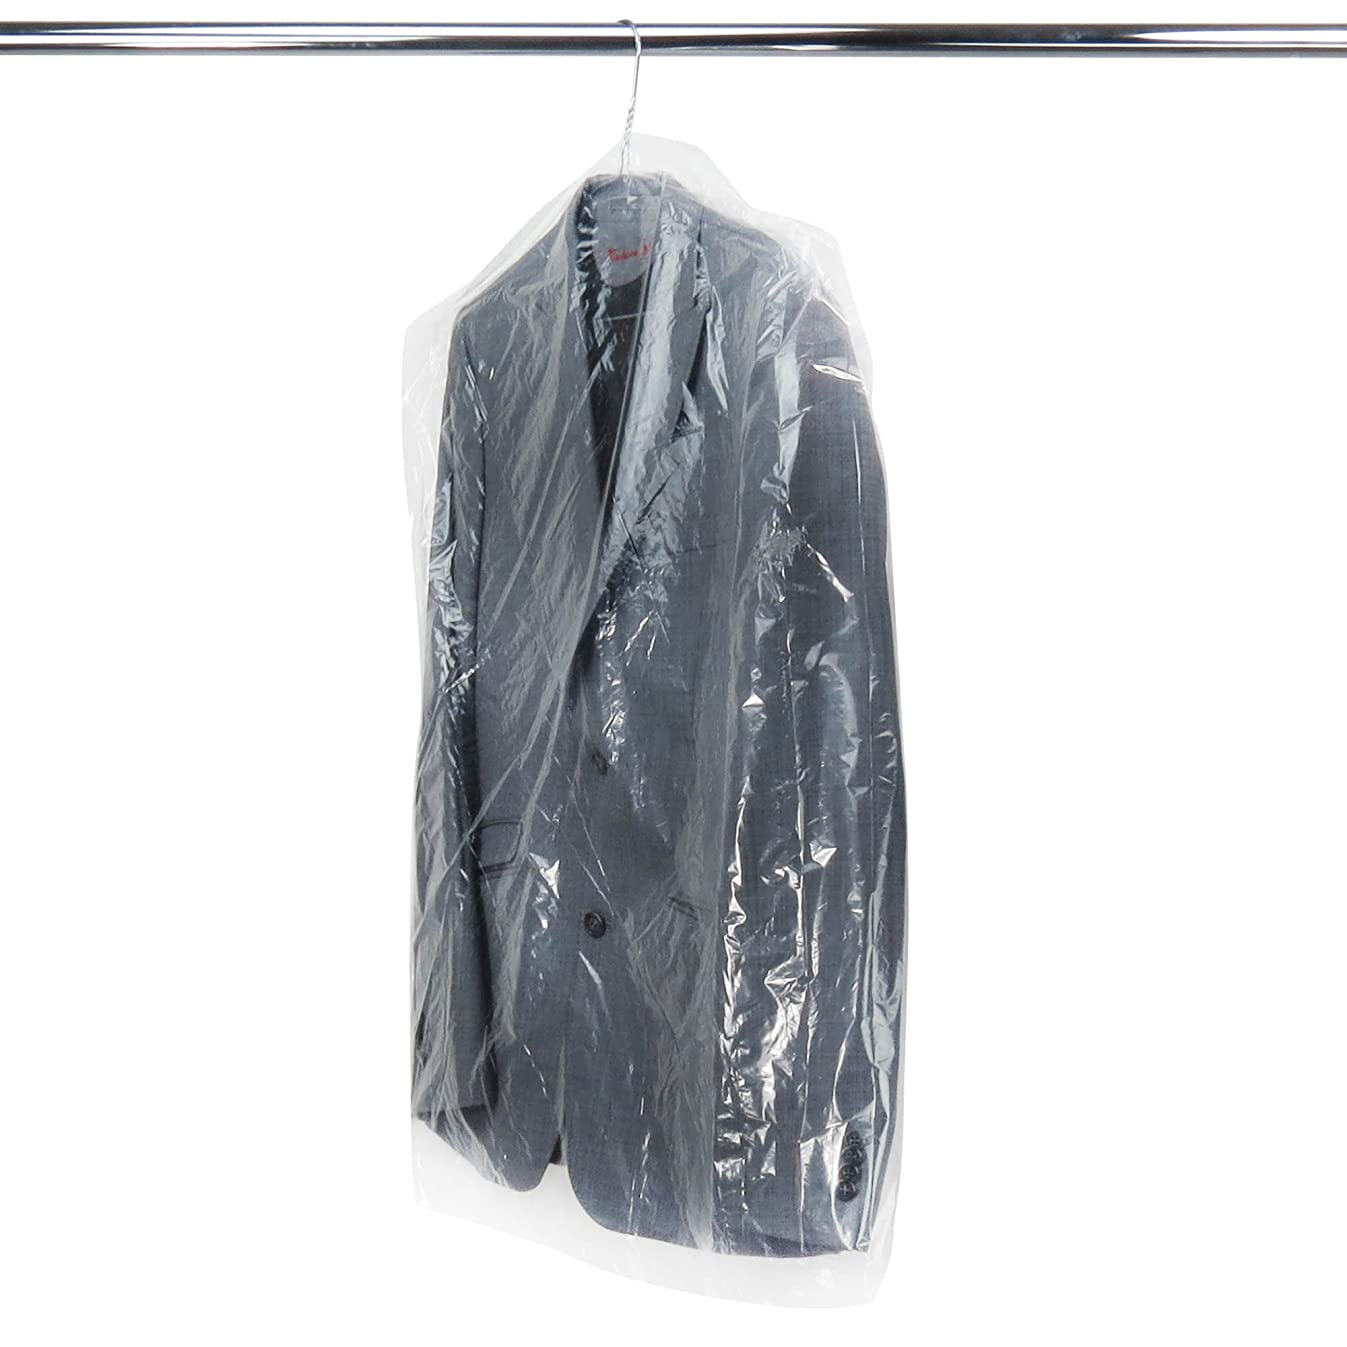 HANGERWORLD 50 Clear 40inch 80 Gauge Dry Cleaning Laundrette Polythylene Garment Clothes Cover Protector Bags.